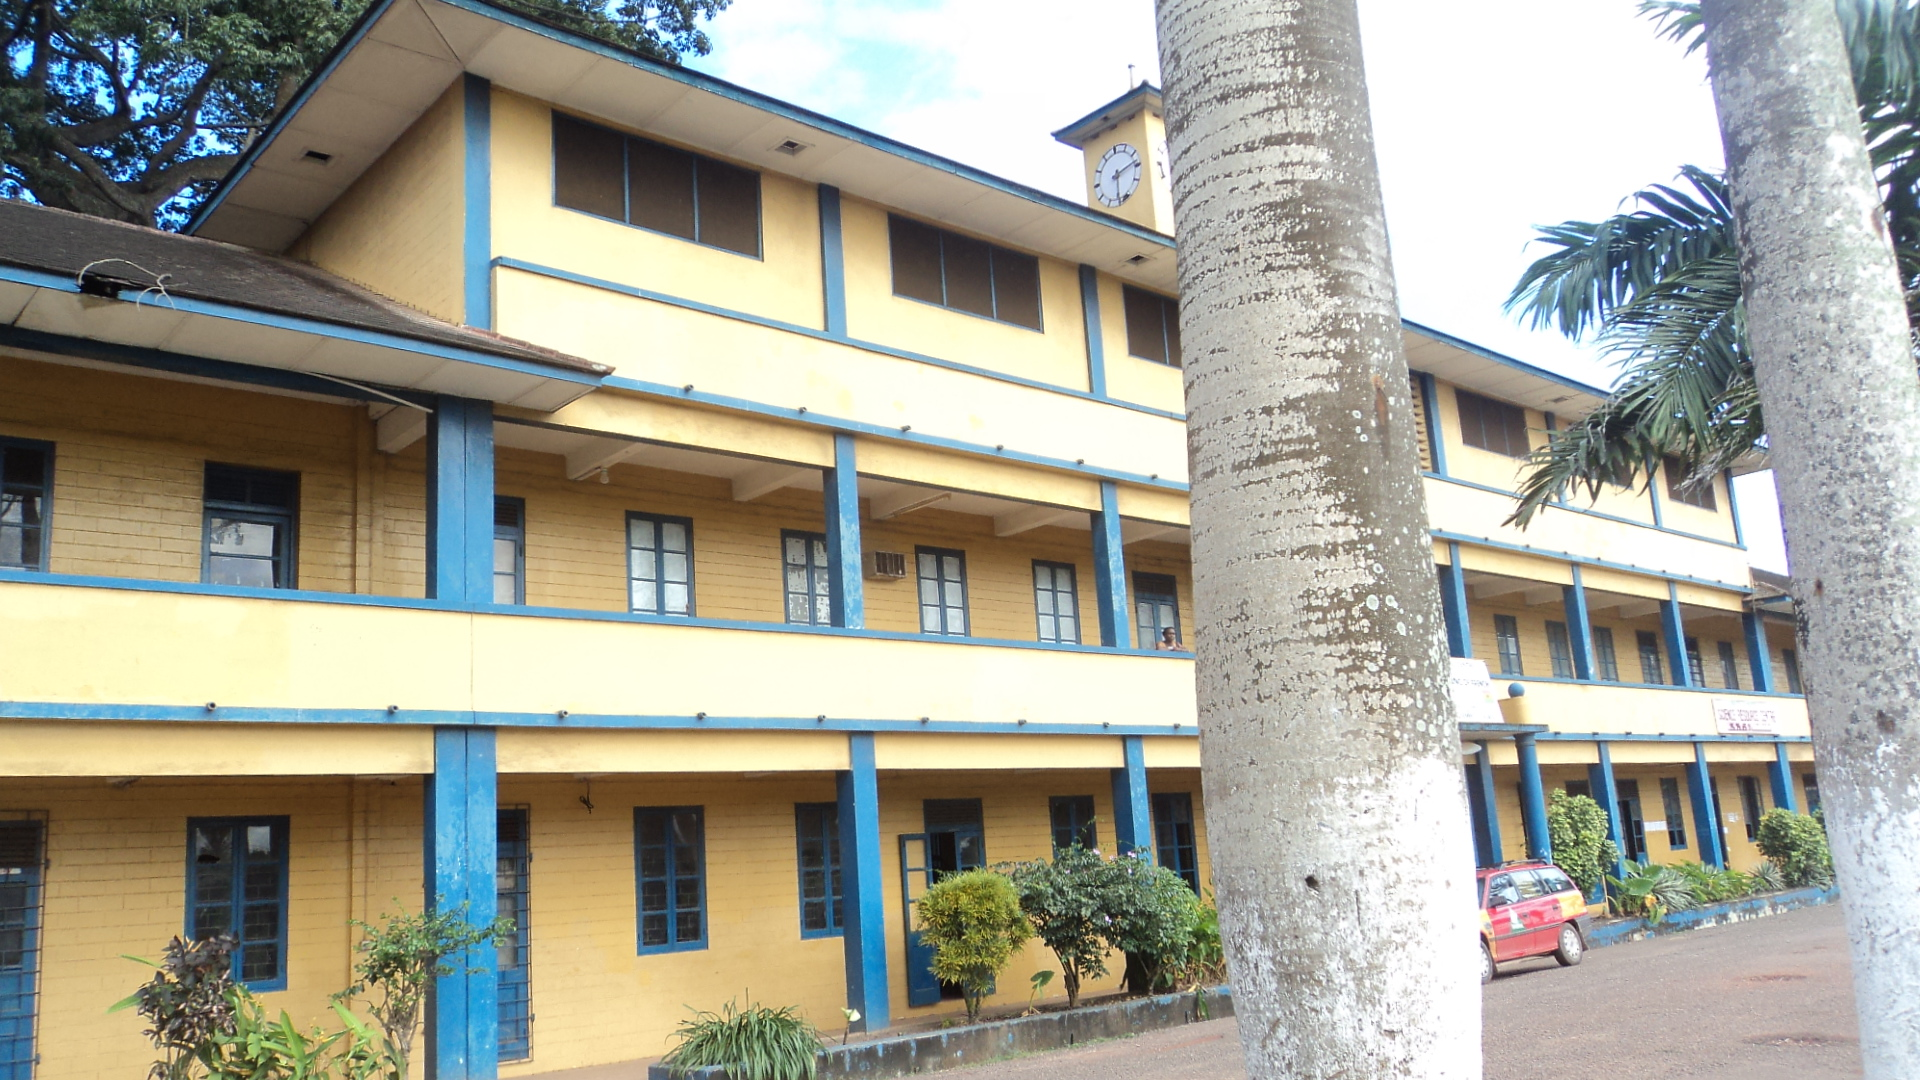 File:GSTS Science Resource block.JPG - Wikimedia Commons